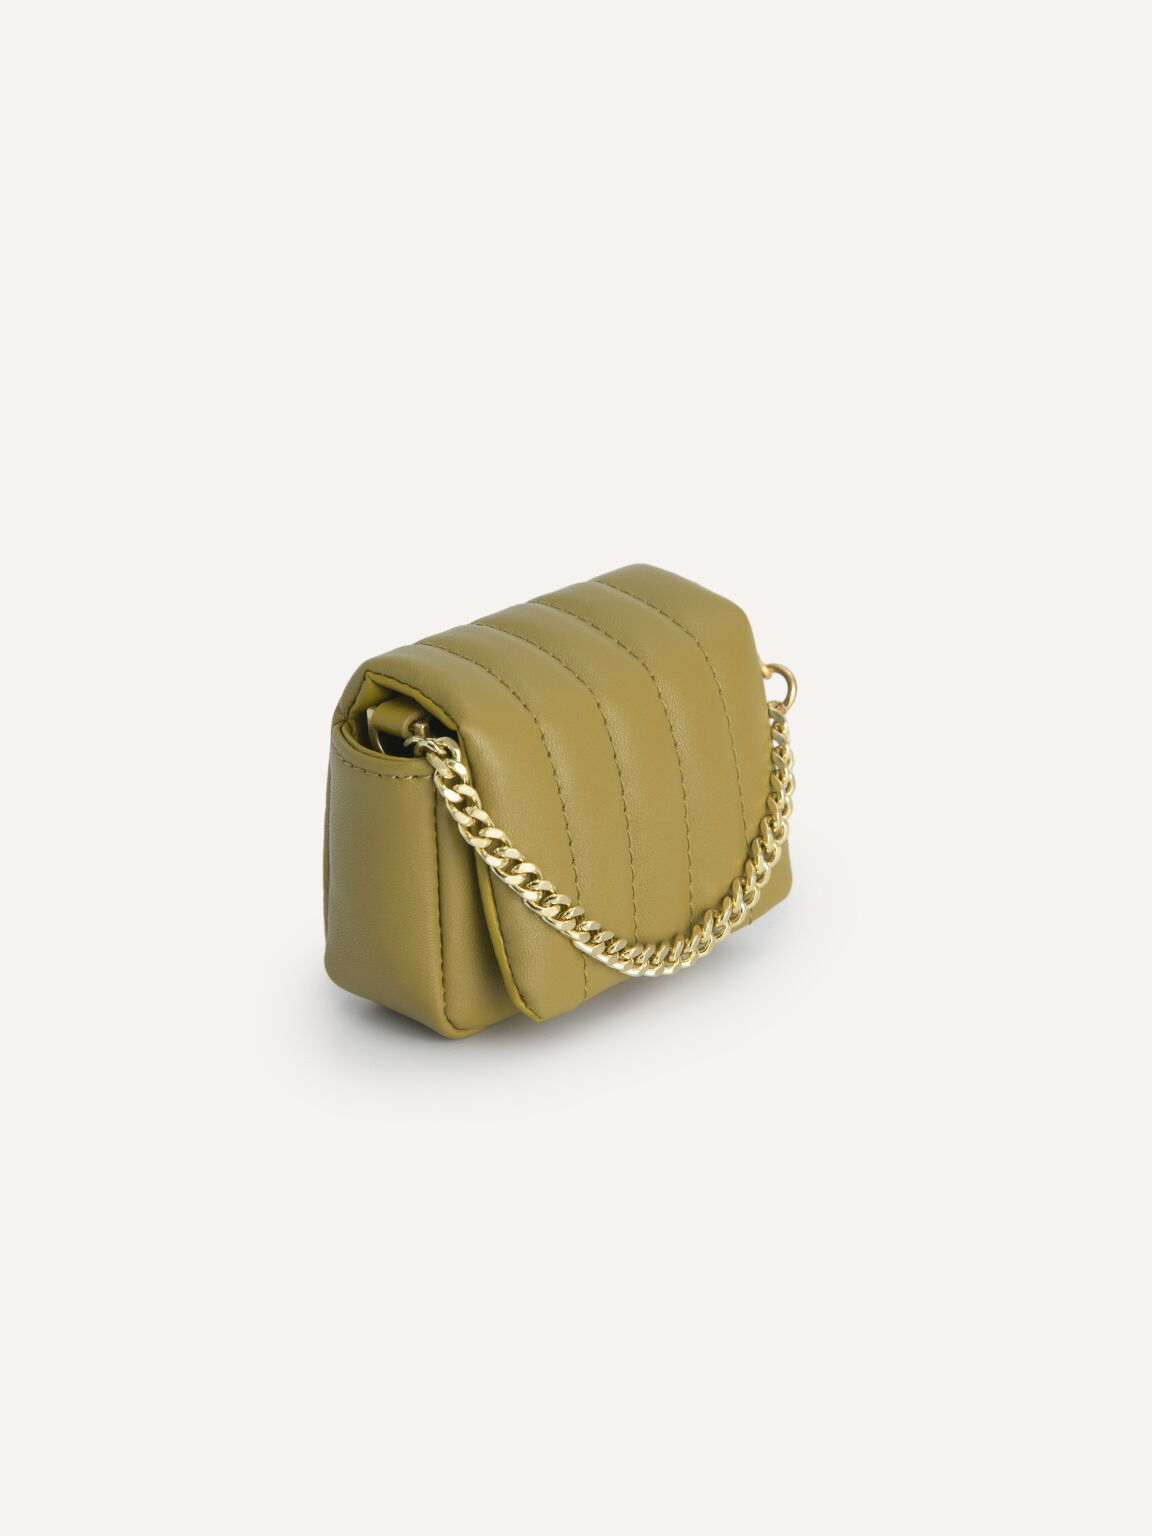 Padded Leather Pouch, Light Green, hi-res